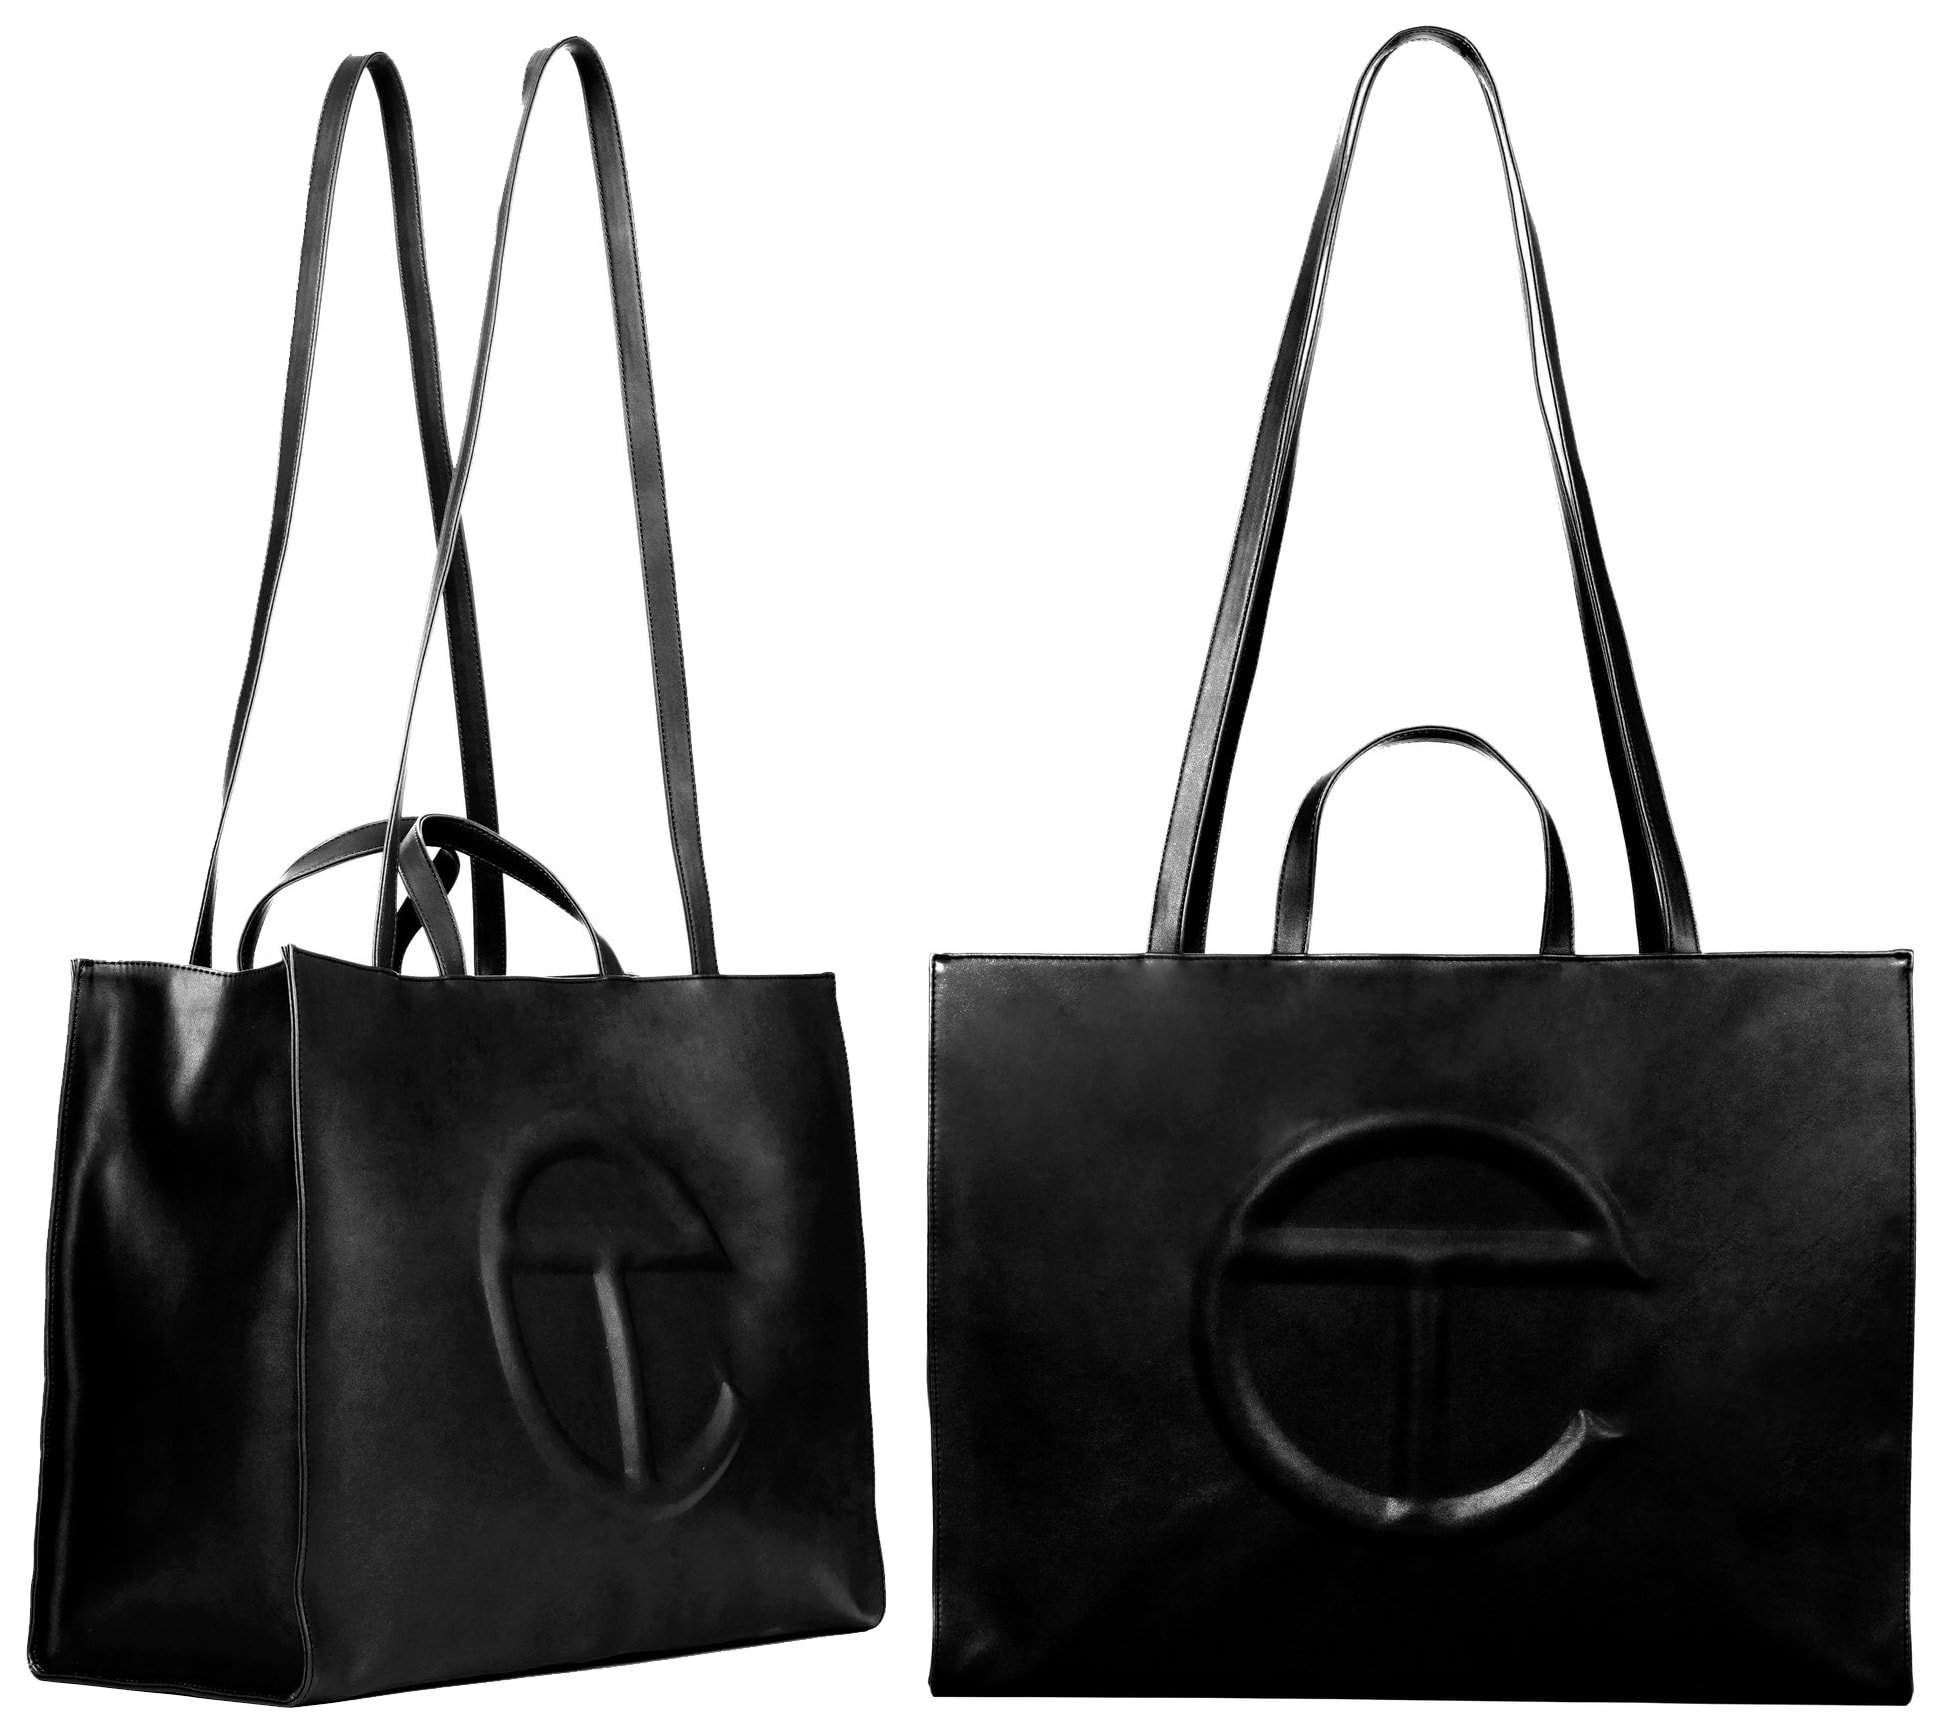 The staple large black shopping bag features a main compartment, an internal laptop-sized compartment, and an internal pocket